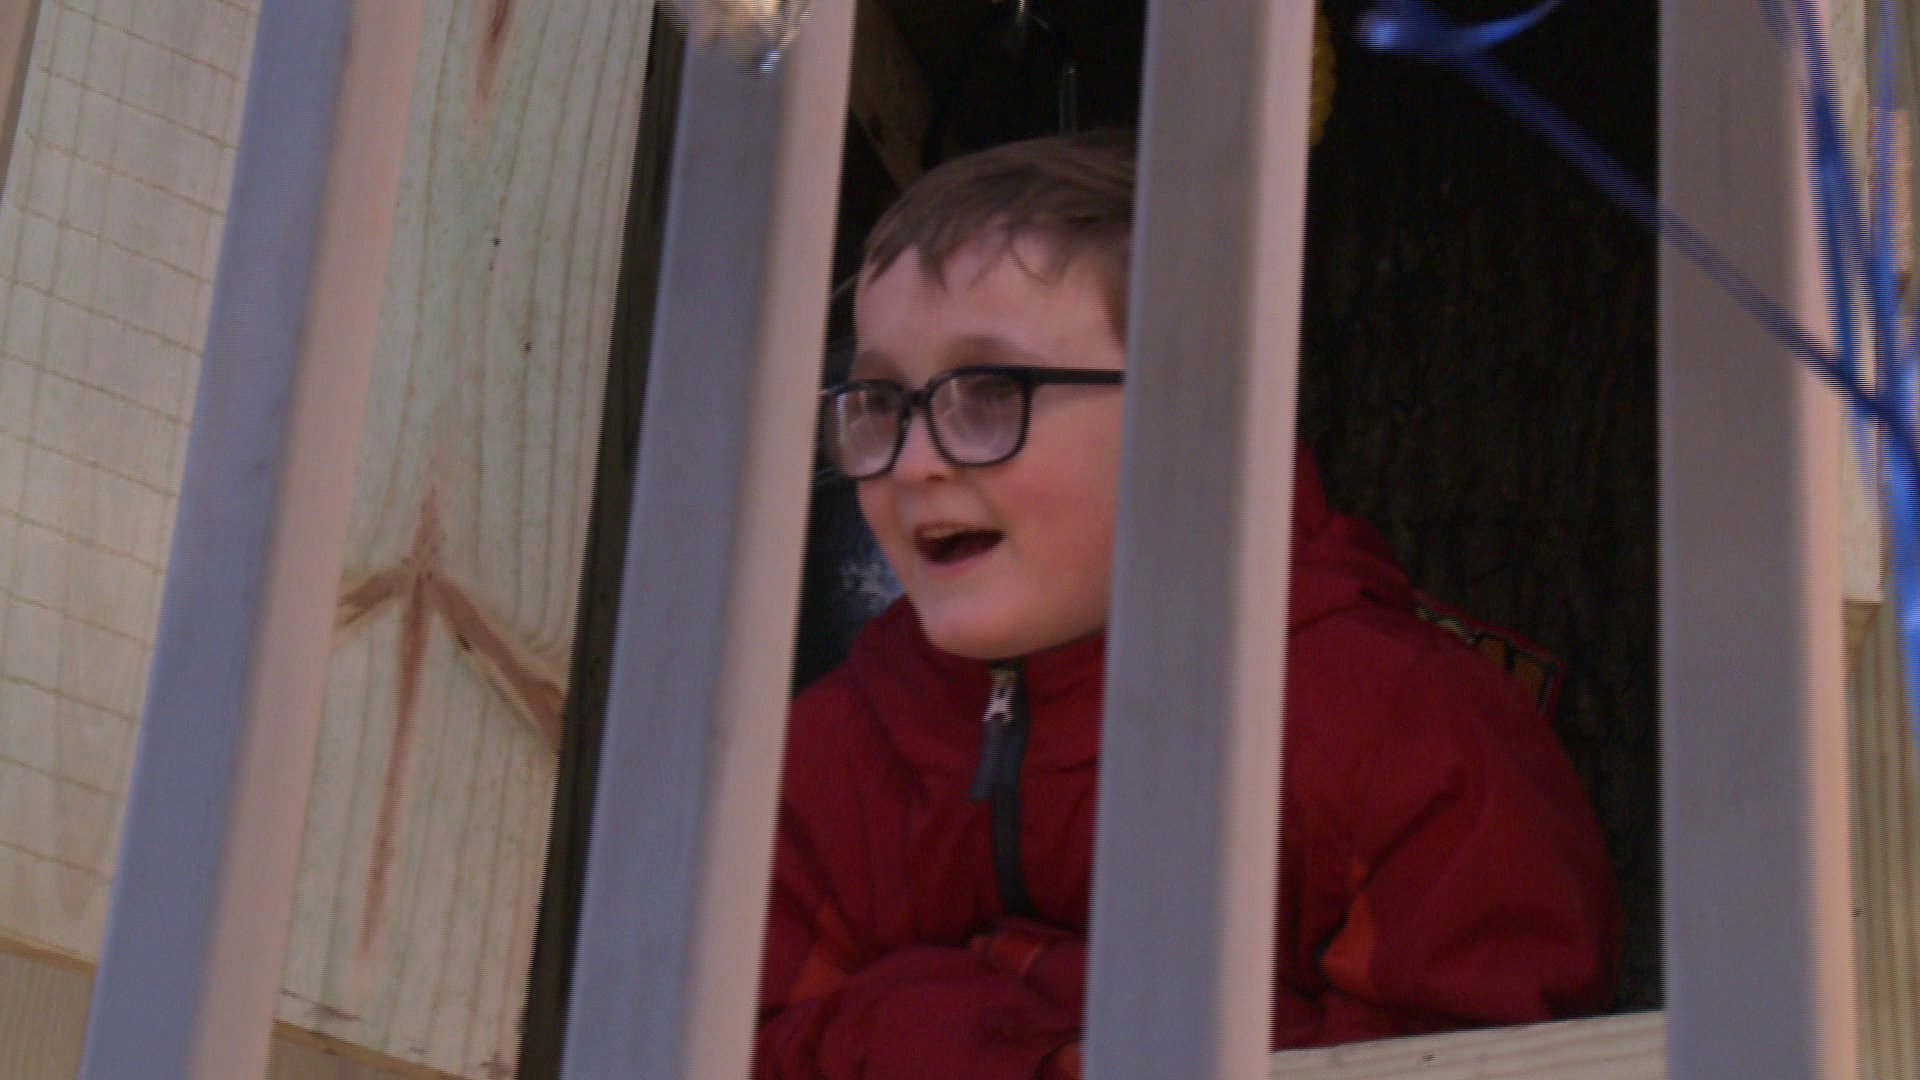 Seven-Year-Old Battling Brain Cancer Gets Surprised with Tree House